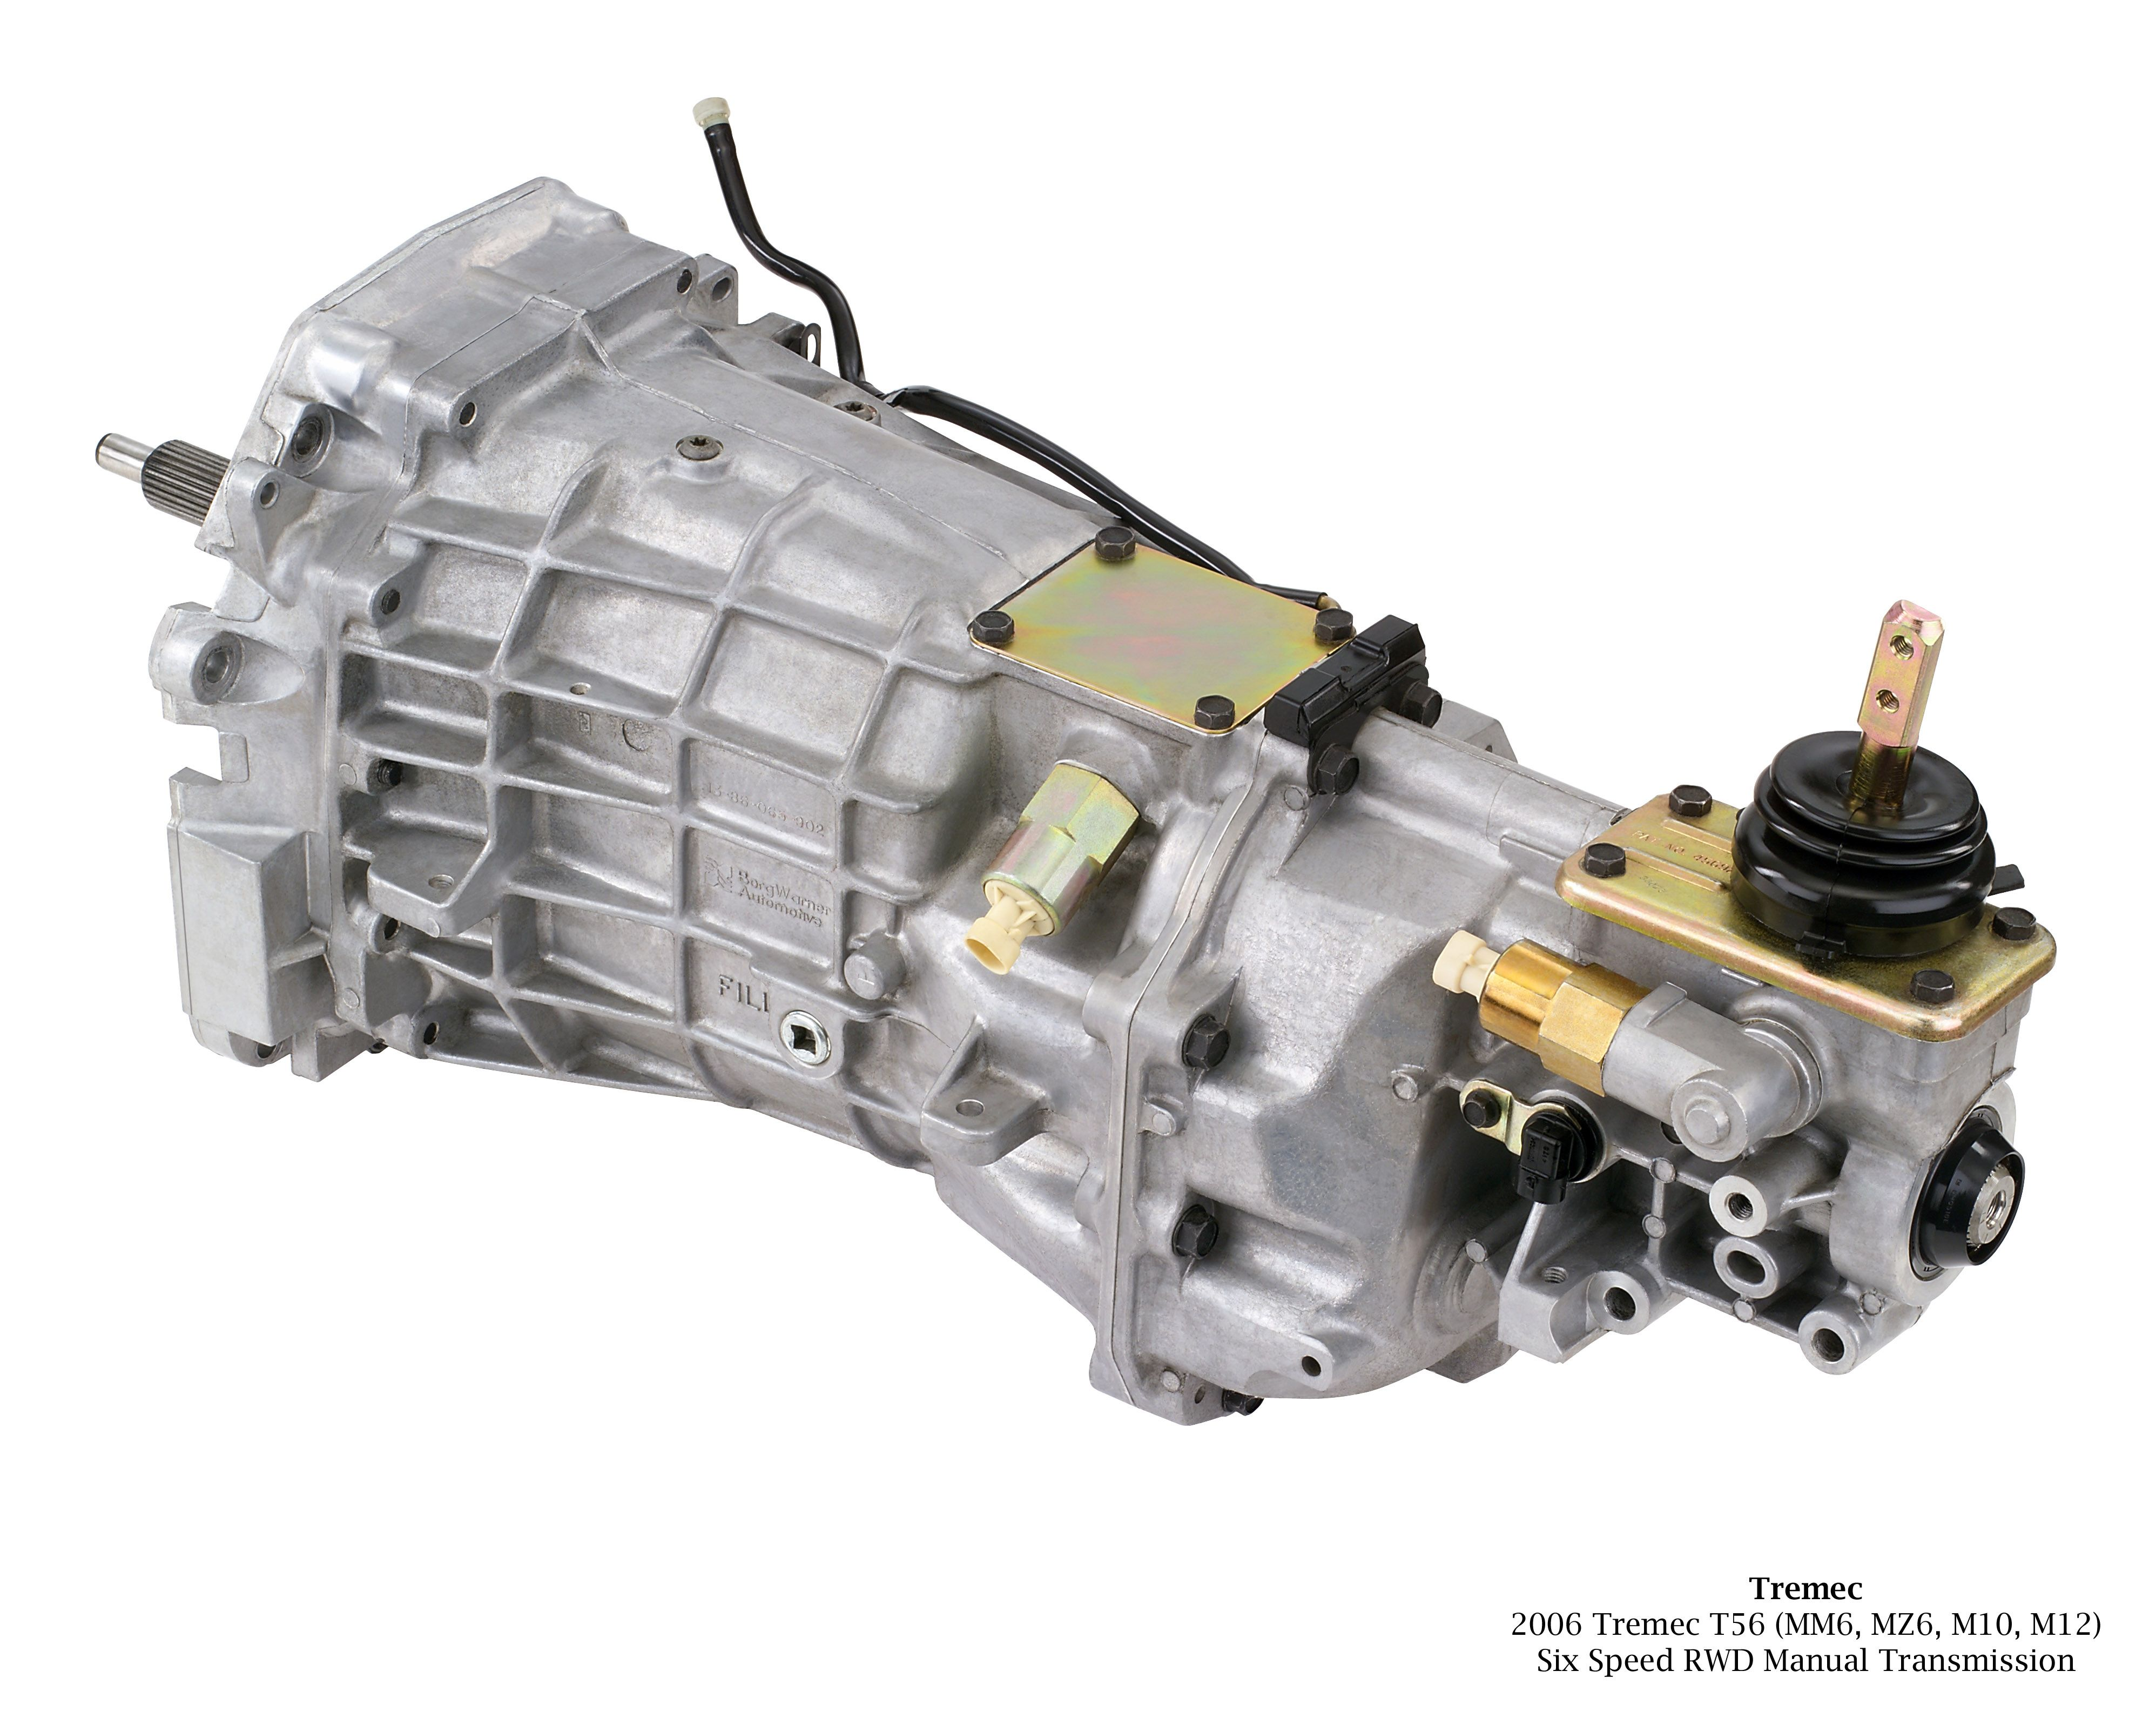 T56 Transmission For Sale >> The Tremec T56 Transmission Mr Transmission Car Transmissions